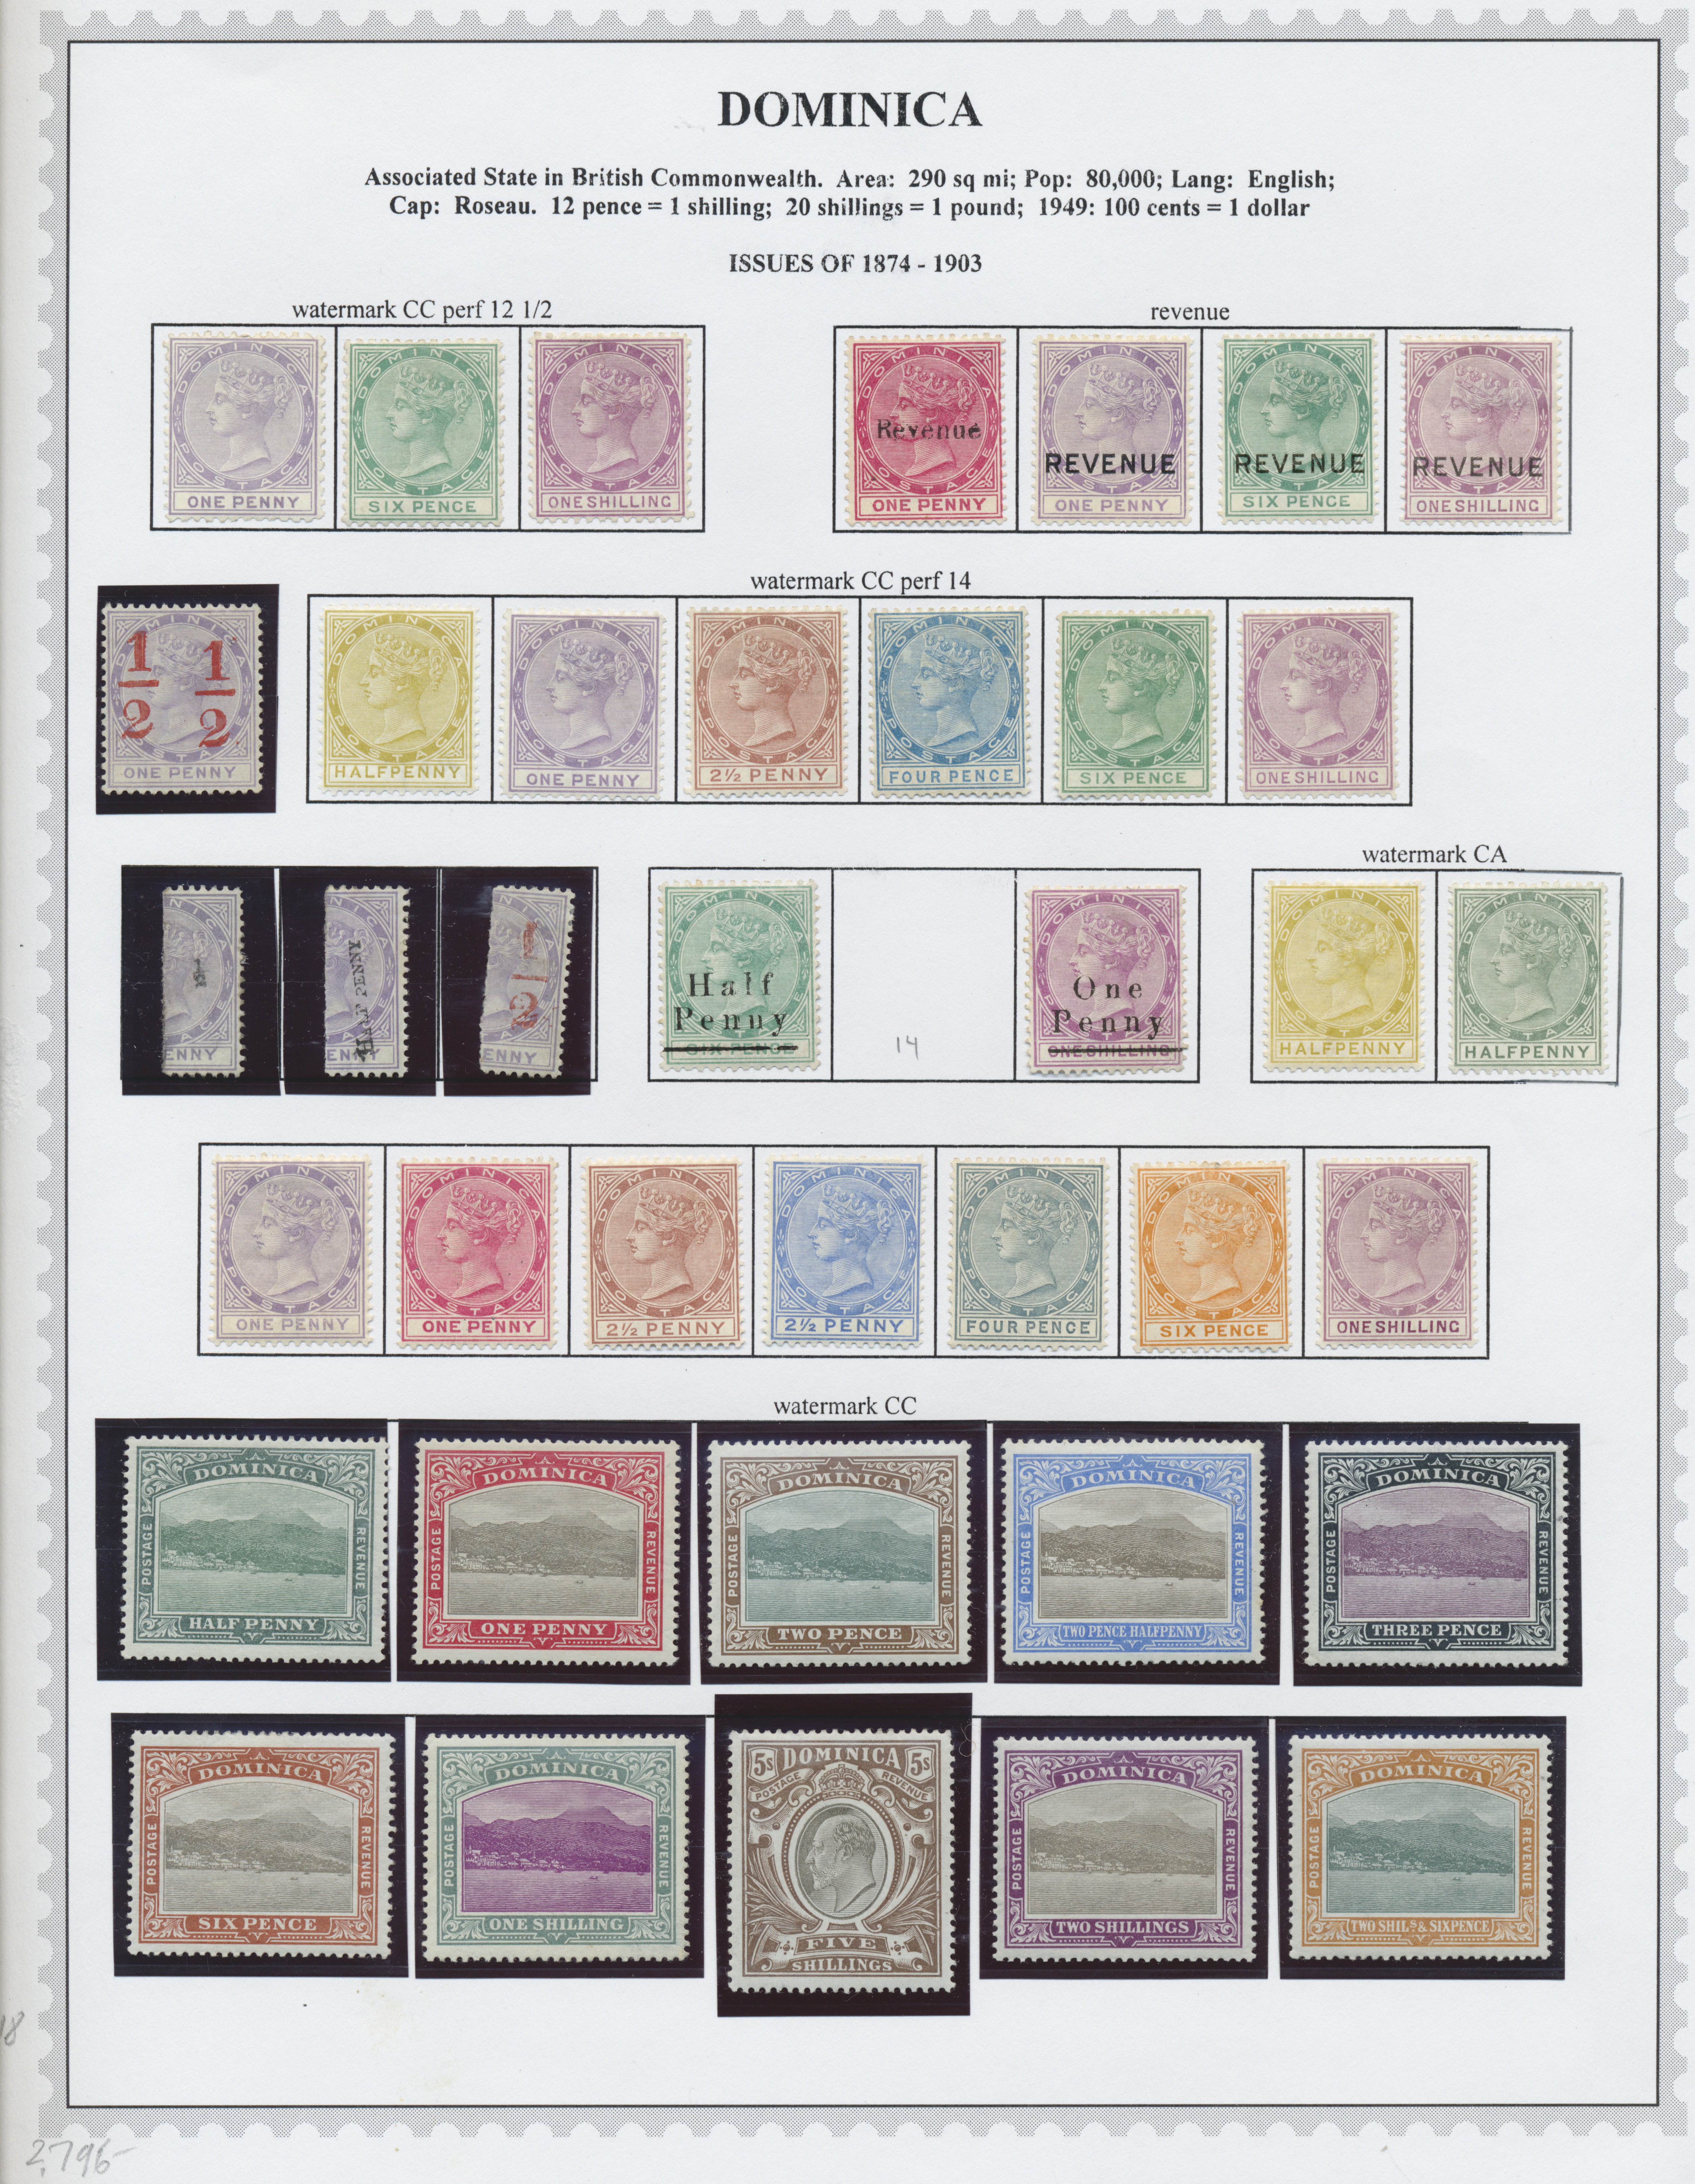 Lot 34492 - dominica  -  Auktionshaus Christoph Gärtner GmbH & Co. KG Collections Germany,  Collections Supplement, Surprise boxes #39 Day 7